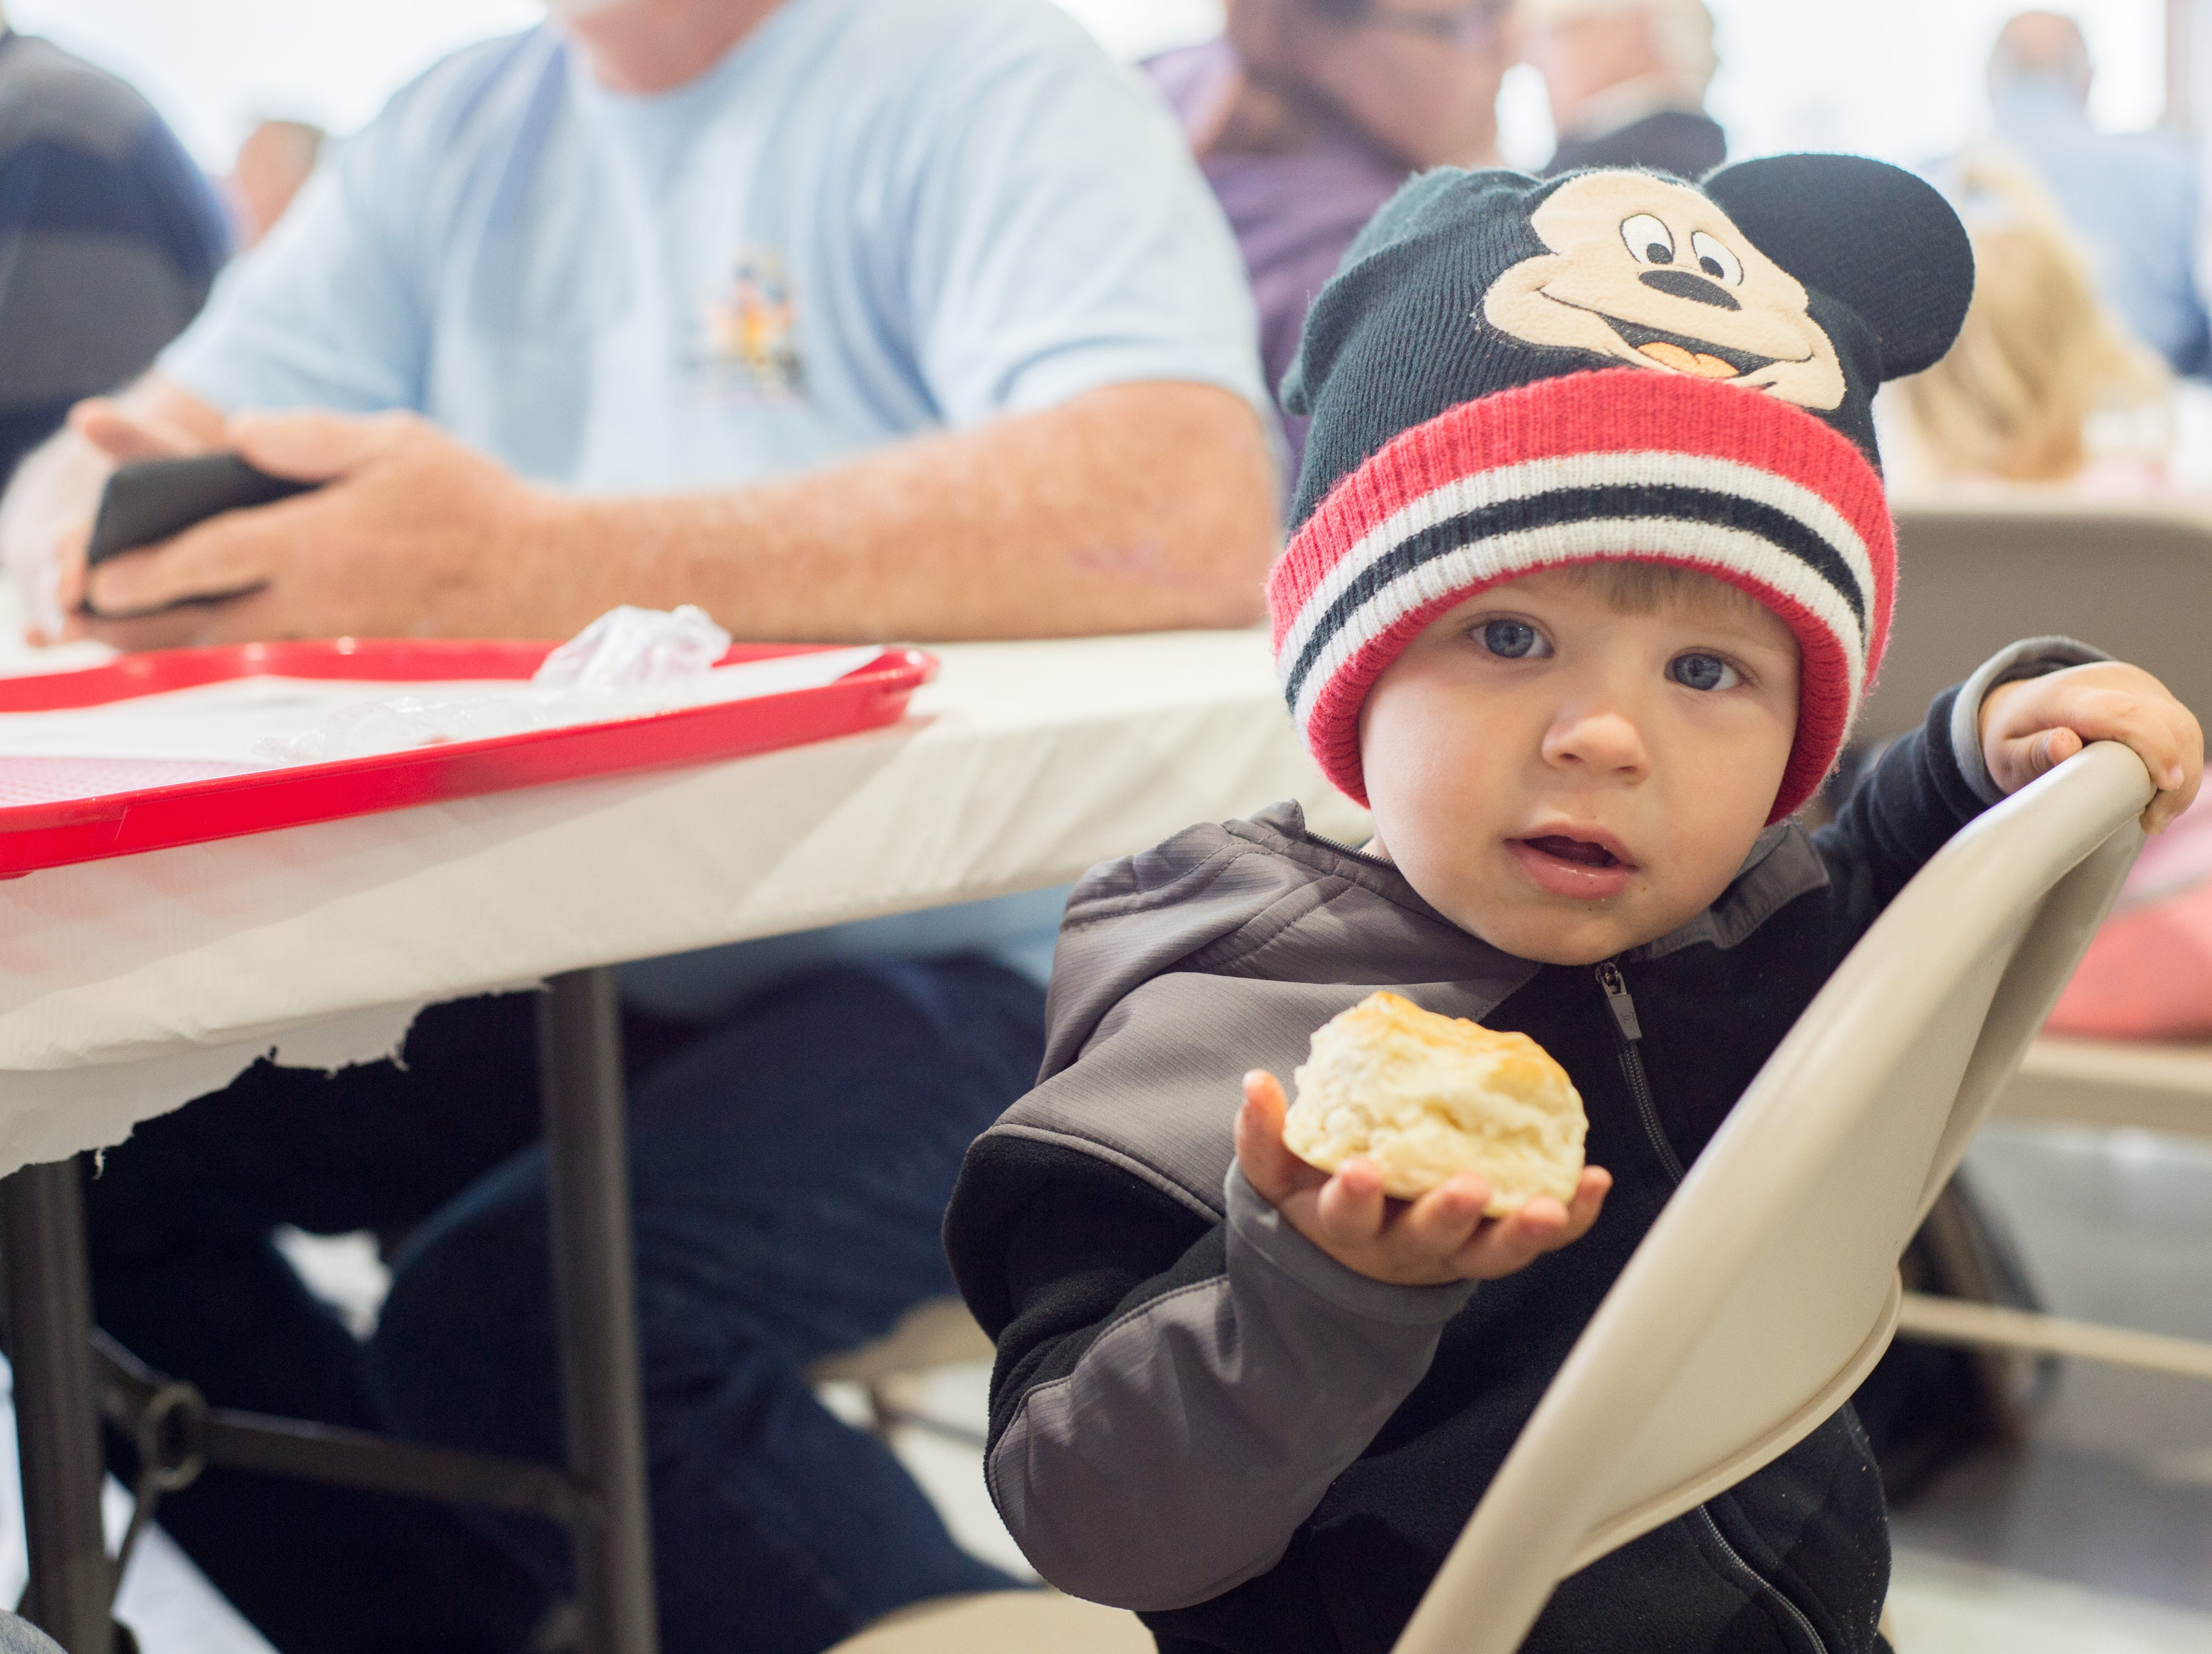 Trey Kowalski enjoys a biscuit during a Fly-In Breakfast at the Sumner County Regional Airport in Gallatin on Saturday, April 13.